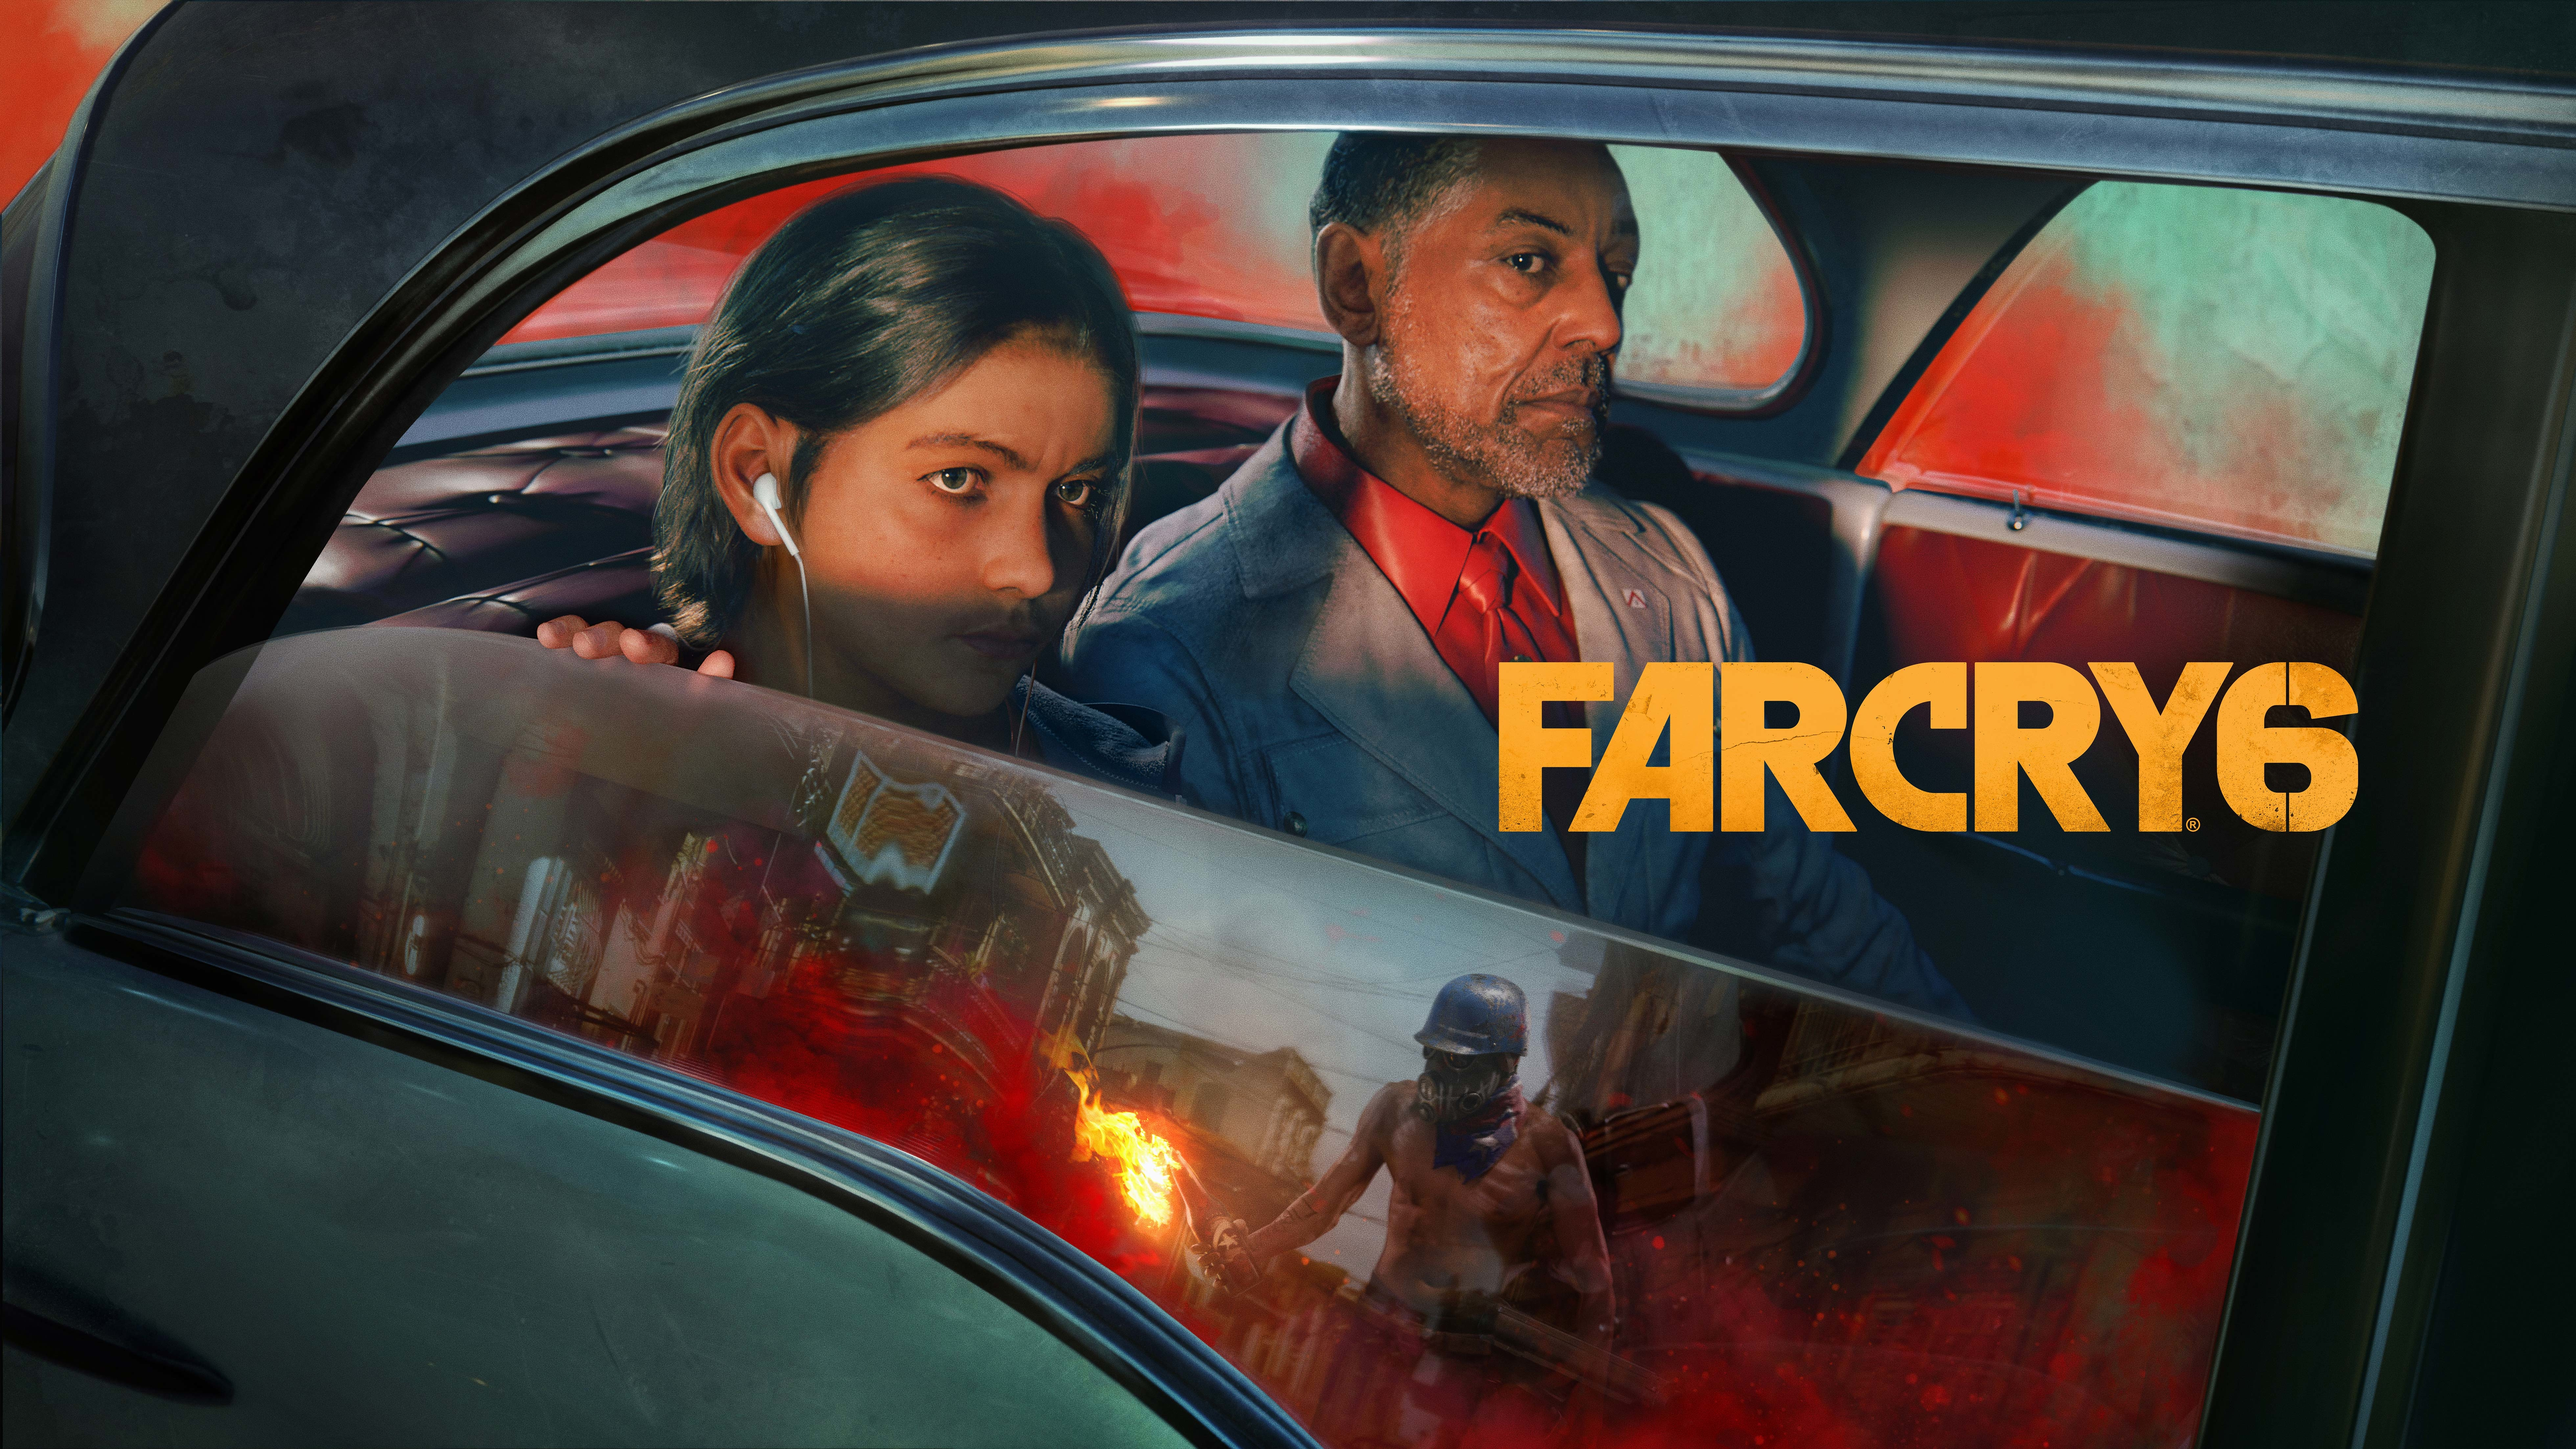 Far Cry 6 Poster Wallpaper Hd Games 4k Wallpapers Images Photos And Background